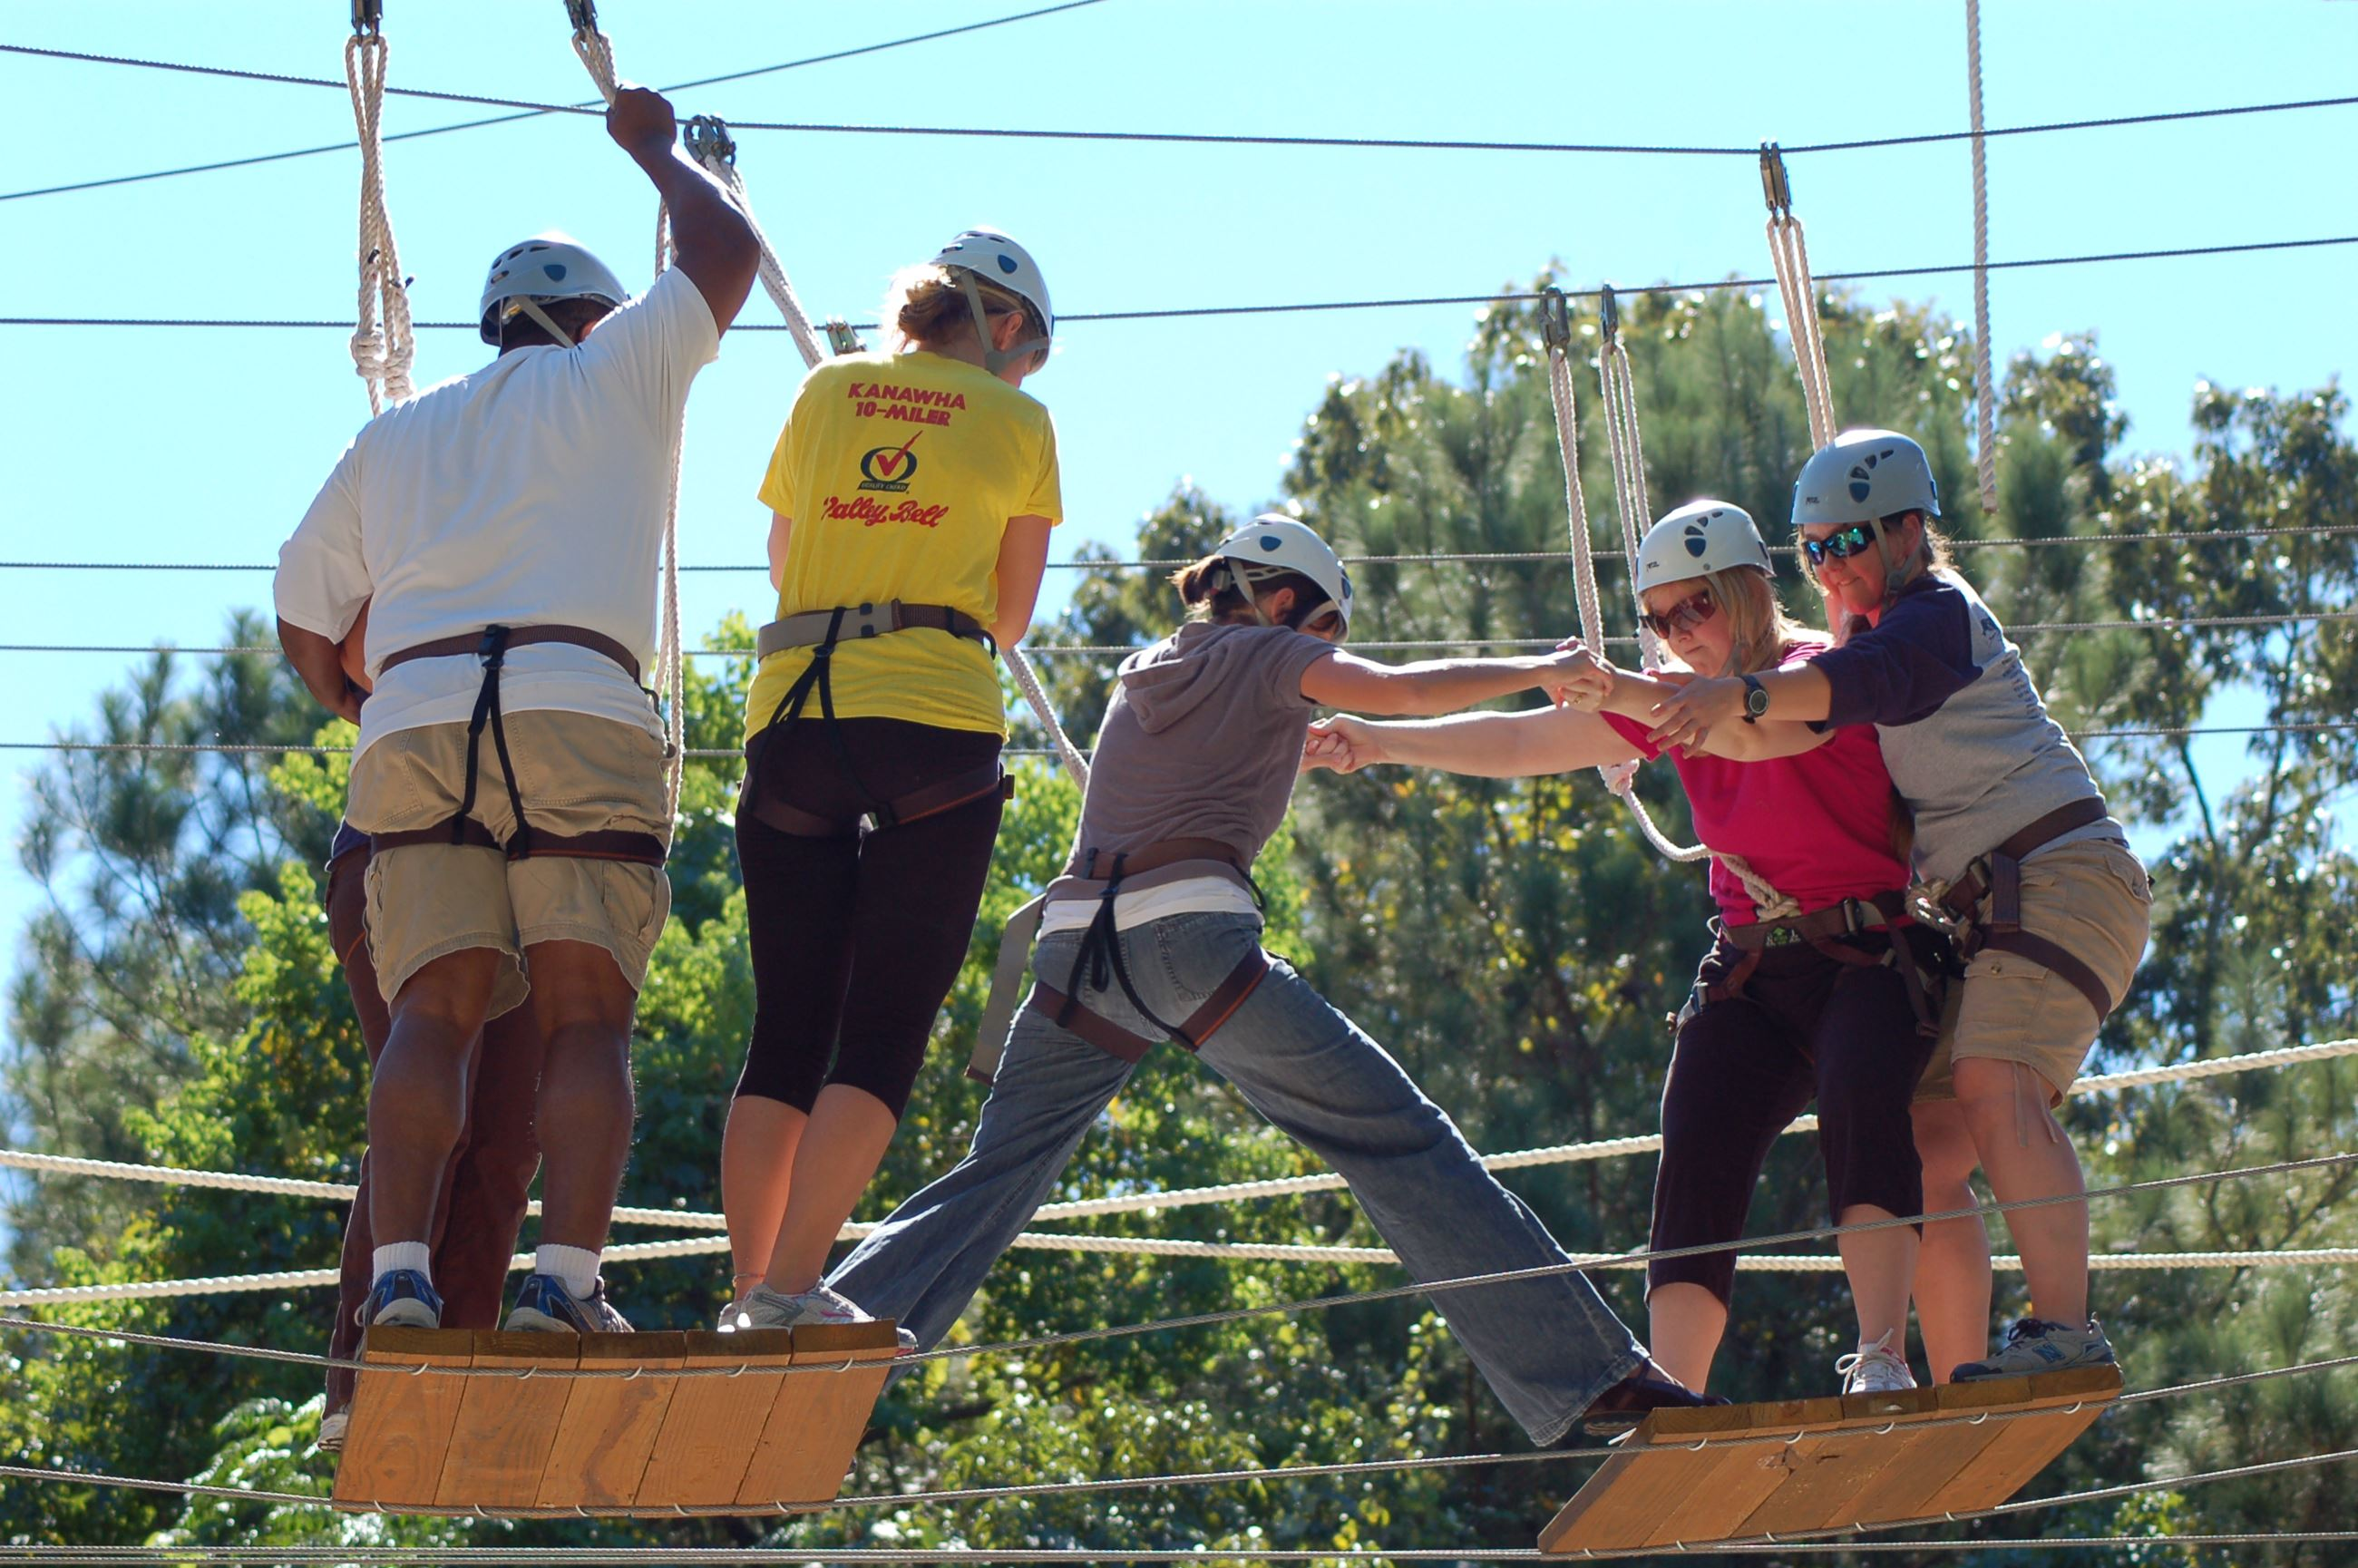 Group of people help each other on the high ropes course